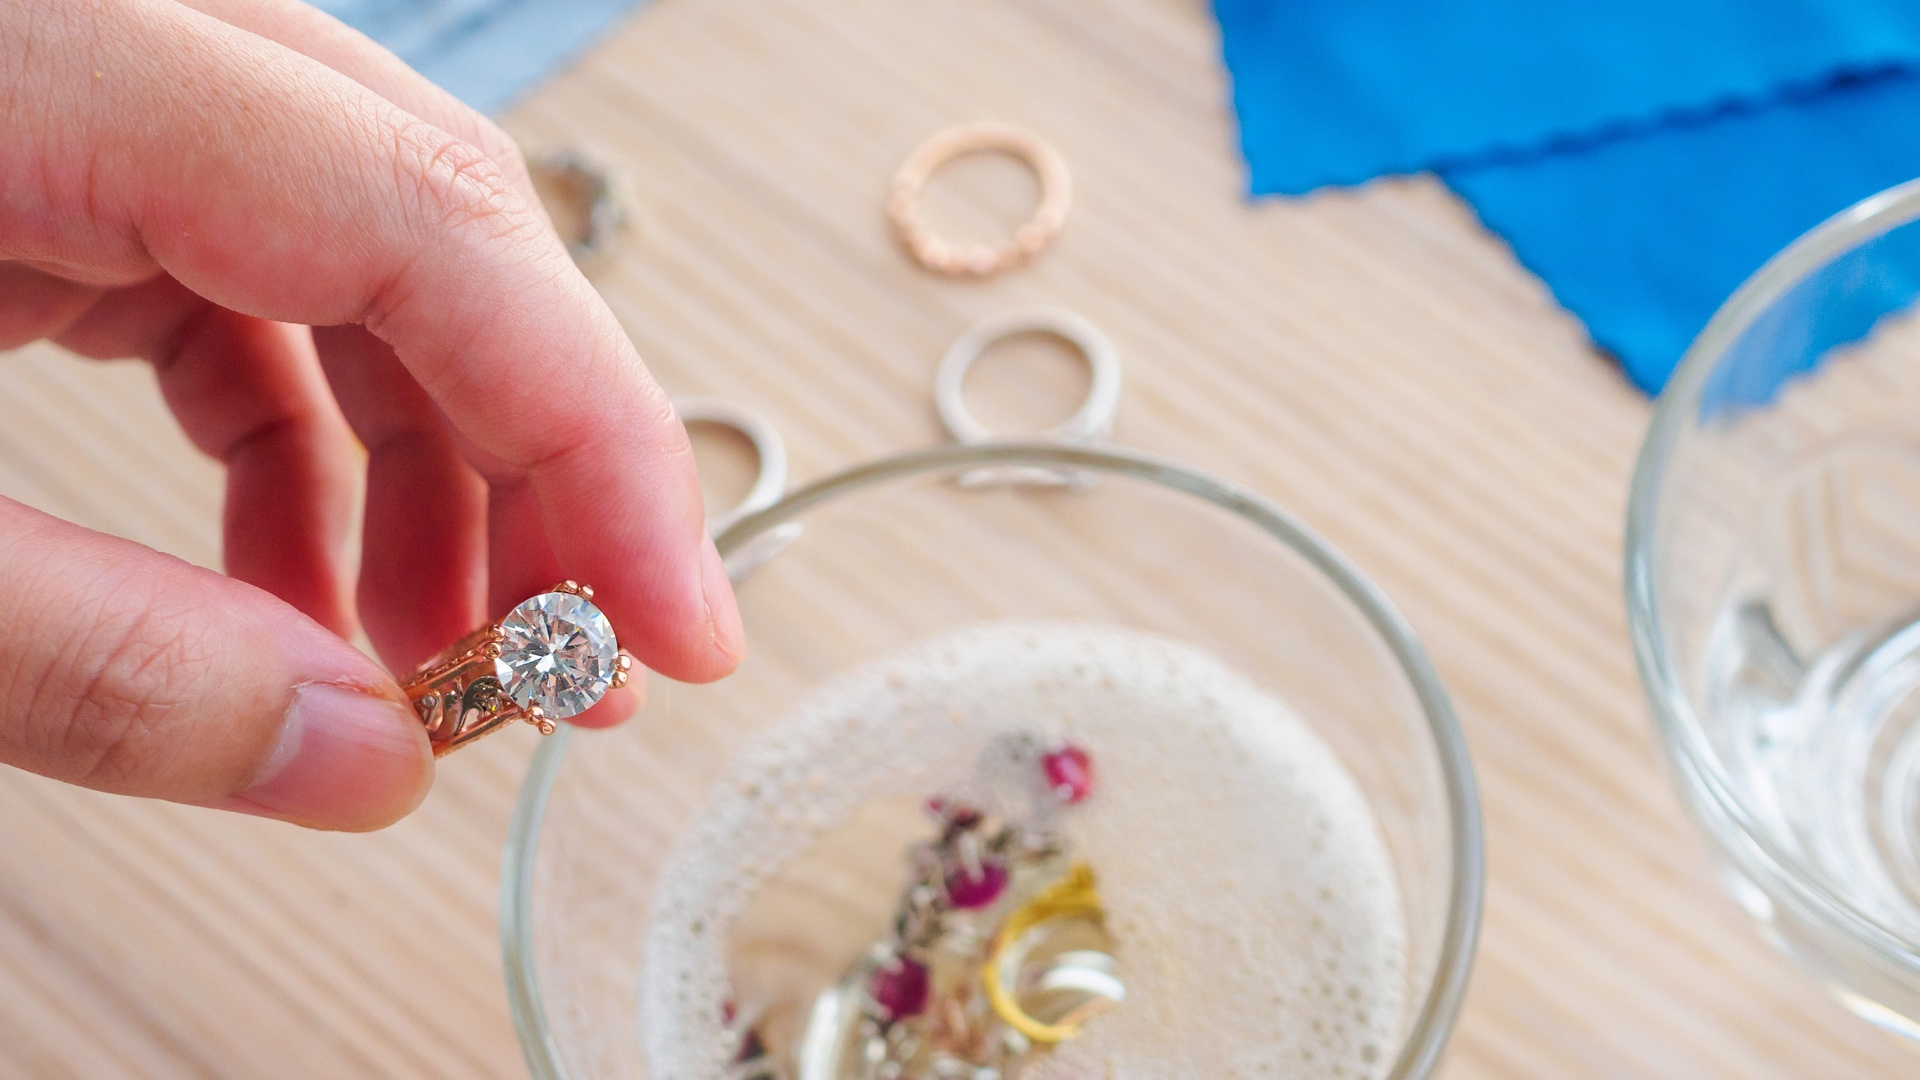 Restore Brilliance to Your Bling With the Best Jewelry Cleaning Kits